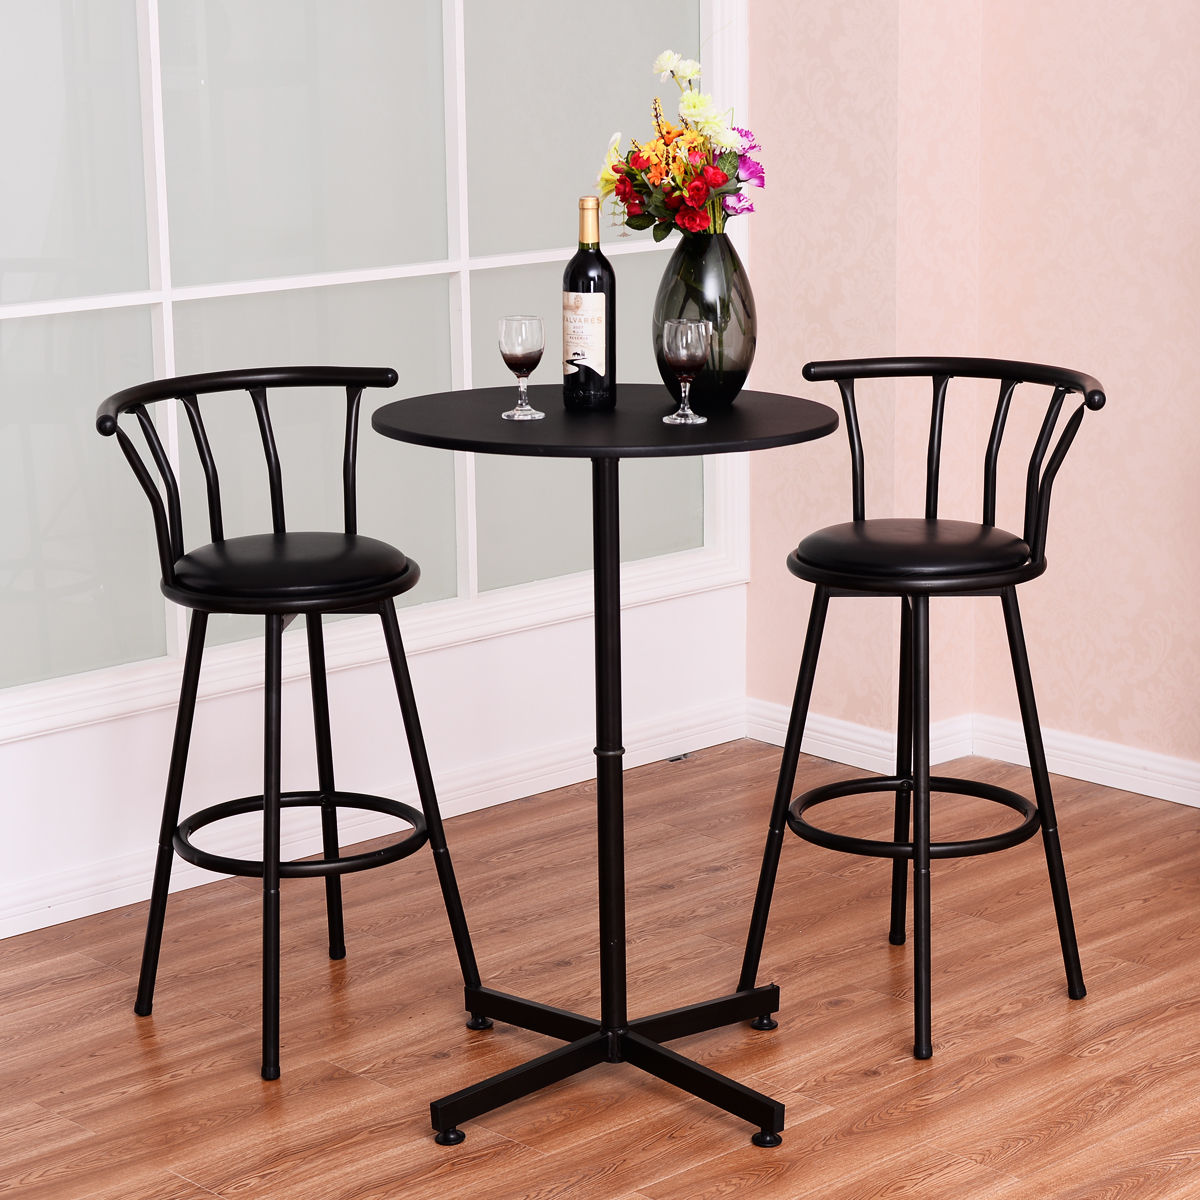 Genial Costway 3 Piece Bar Table Set With 2 Stools Bistro Pub Kitchen Dining  Furniture Black